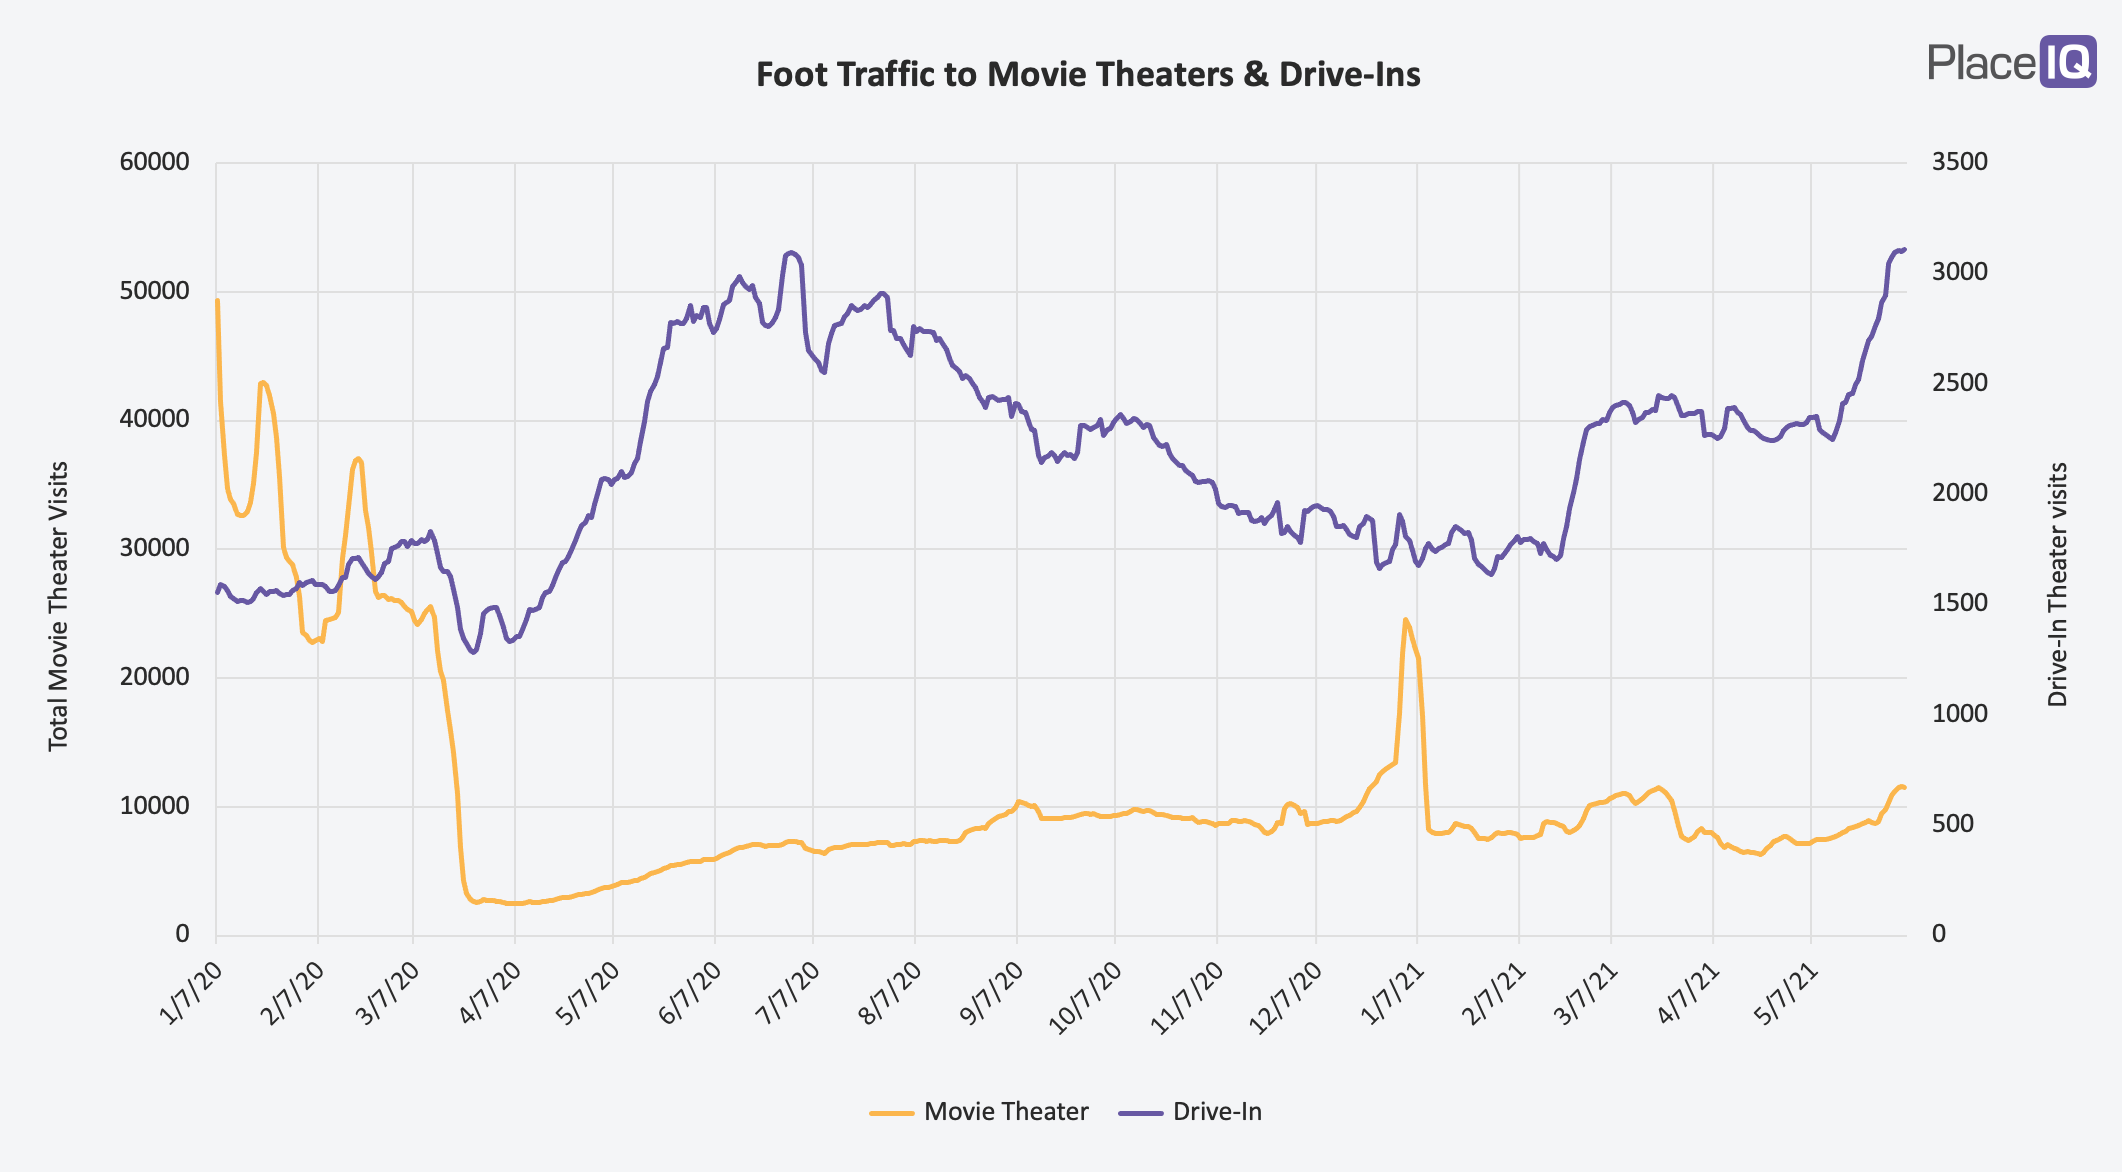 CHART: Foot Traffic to Movie Theaters & Drive-Ins